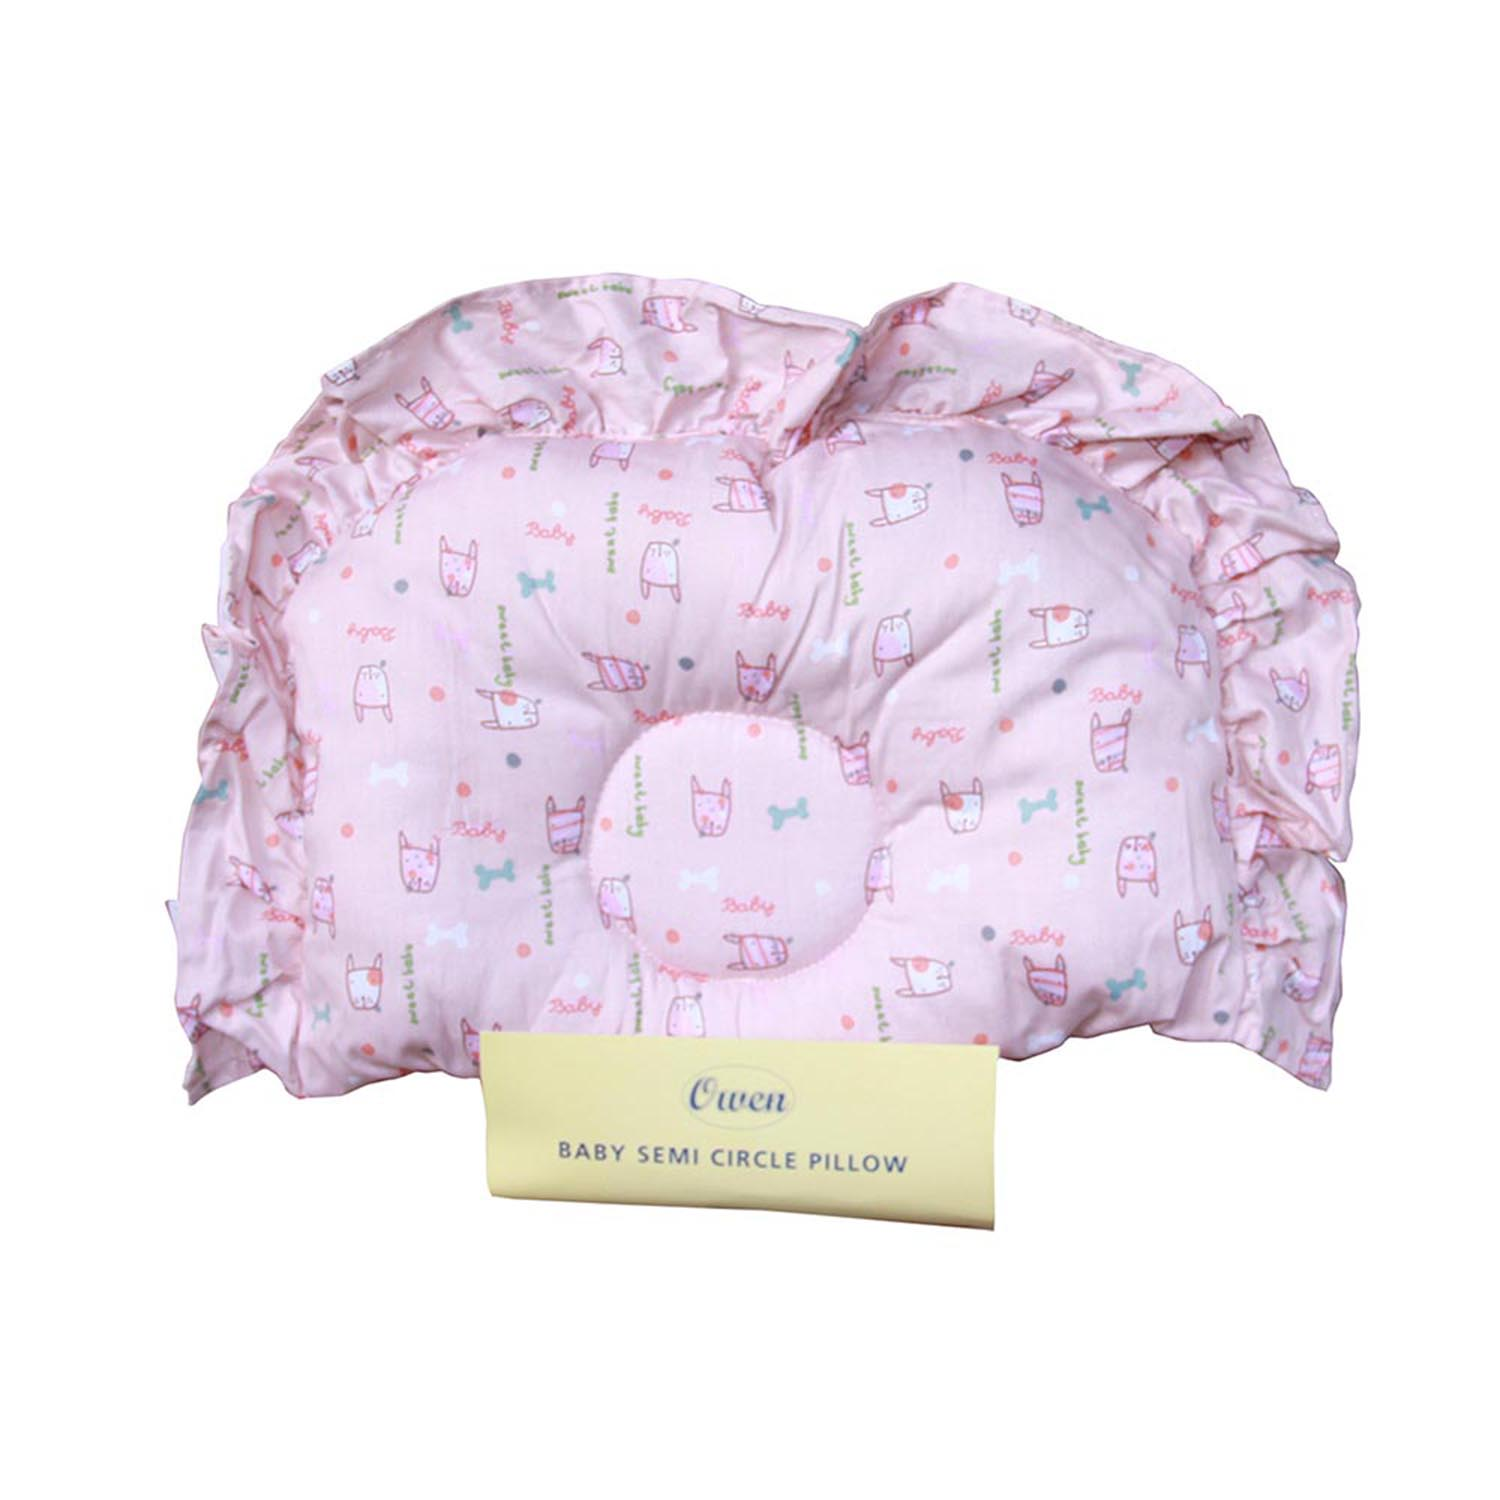 Owen Semi Circle Pillow White Pink